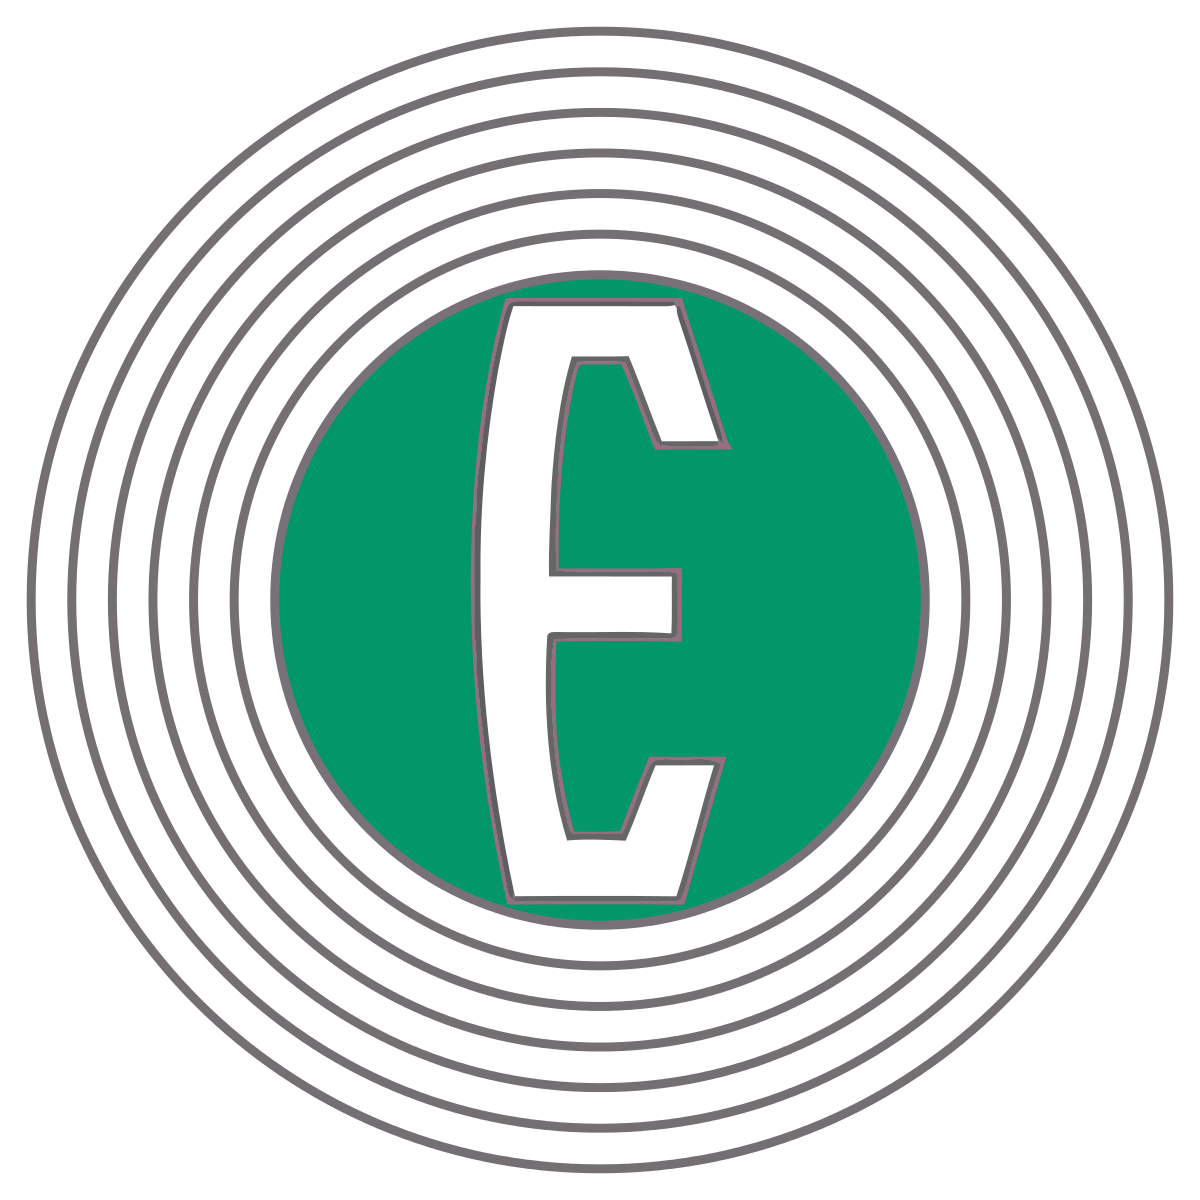 Edsel logo hd png information carlogos 1200x1200 hd png voltagebd Image collections